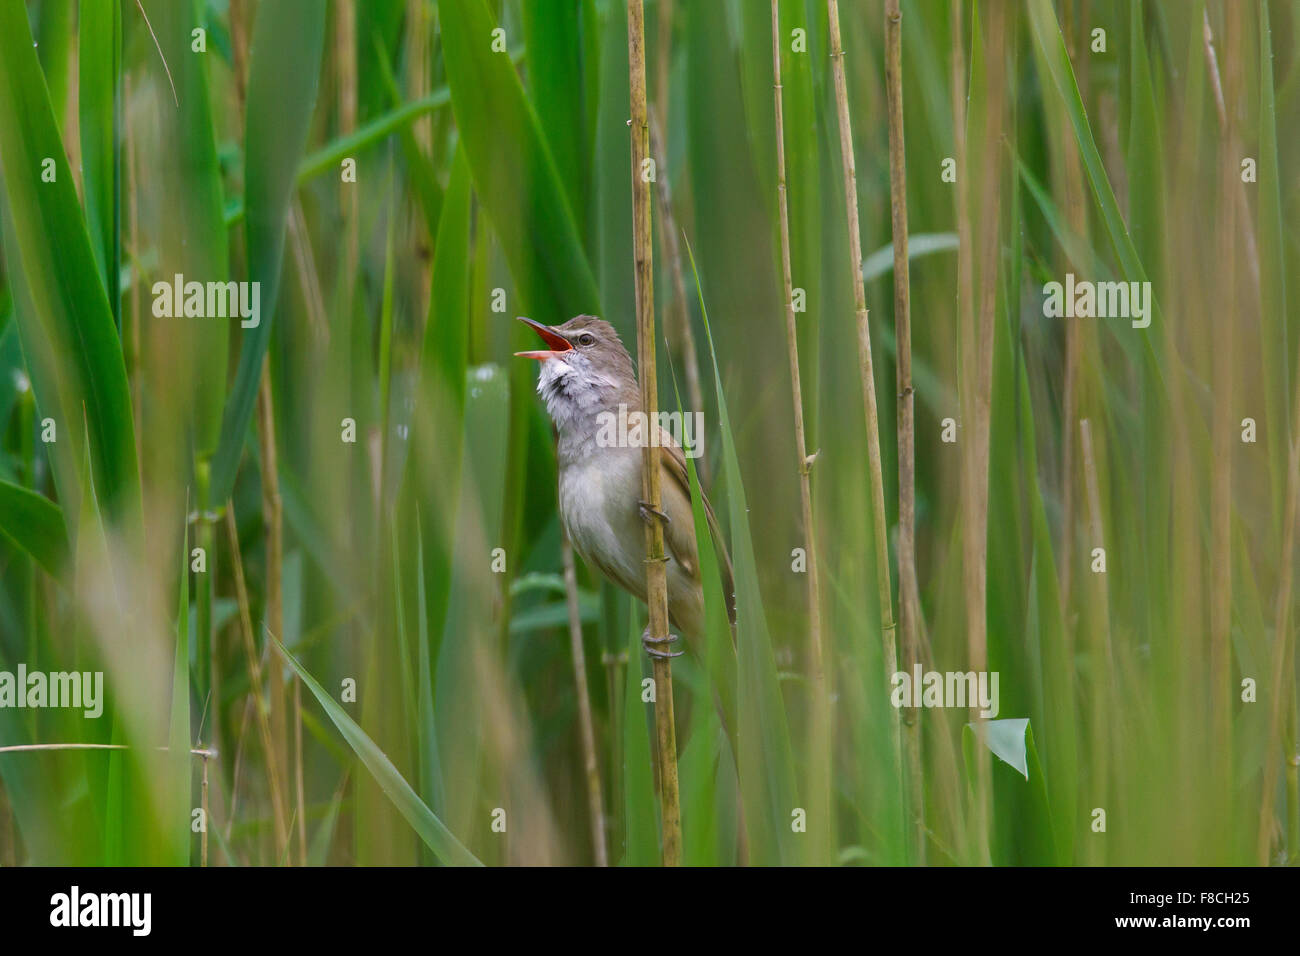 Great reed warbler (Acrocephalus arundinaceus) male singing from reed stem in reedbed in spring Stock Photo